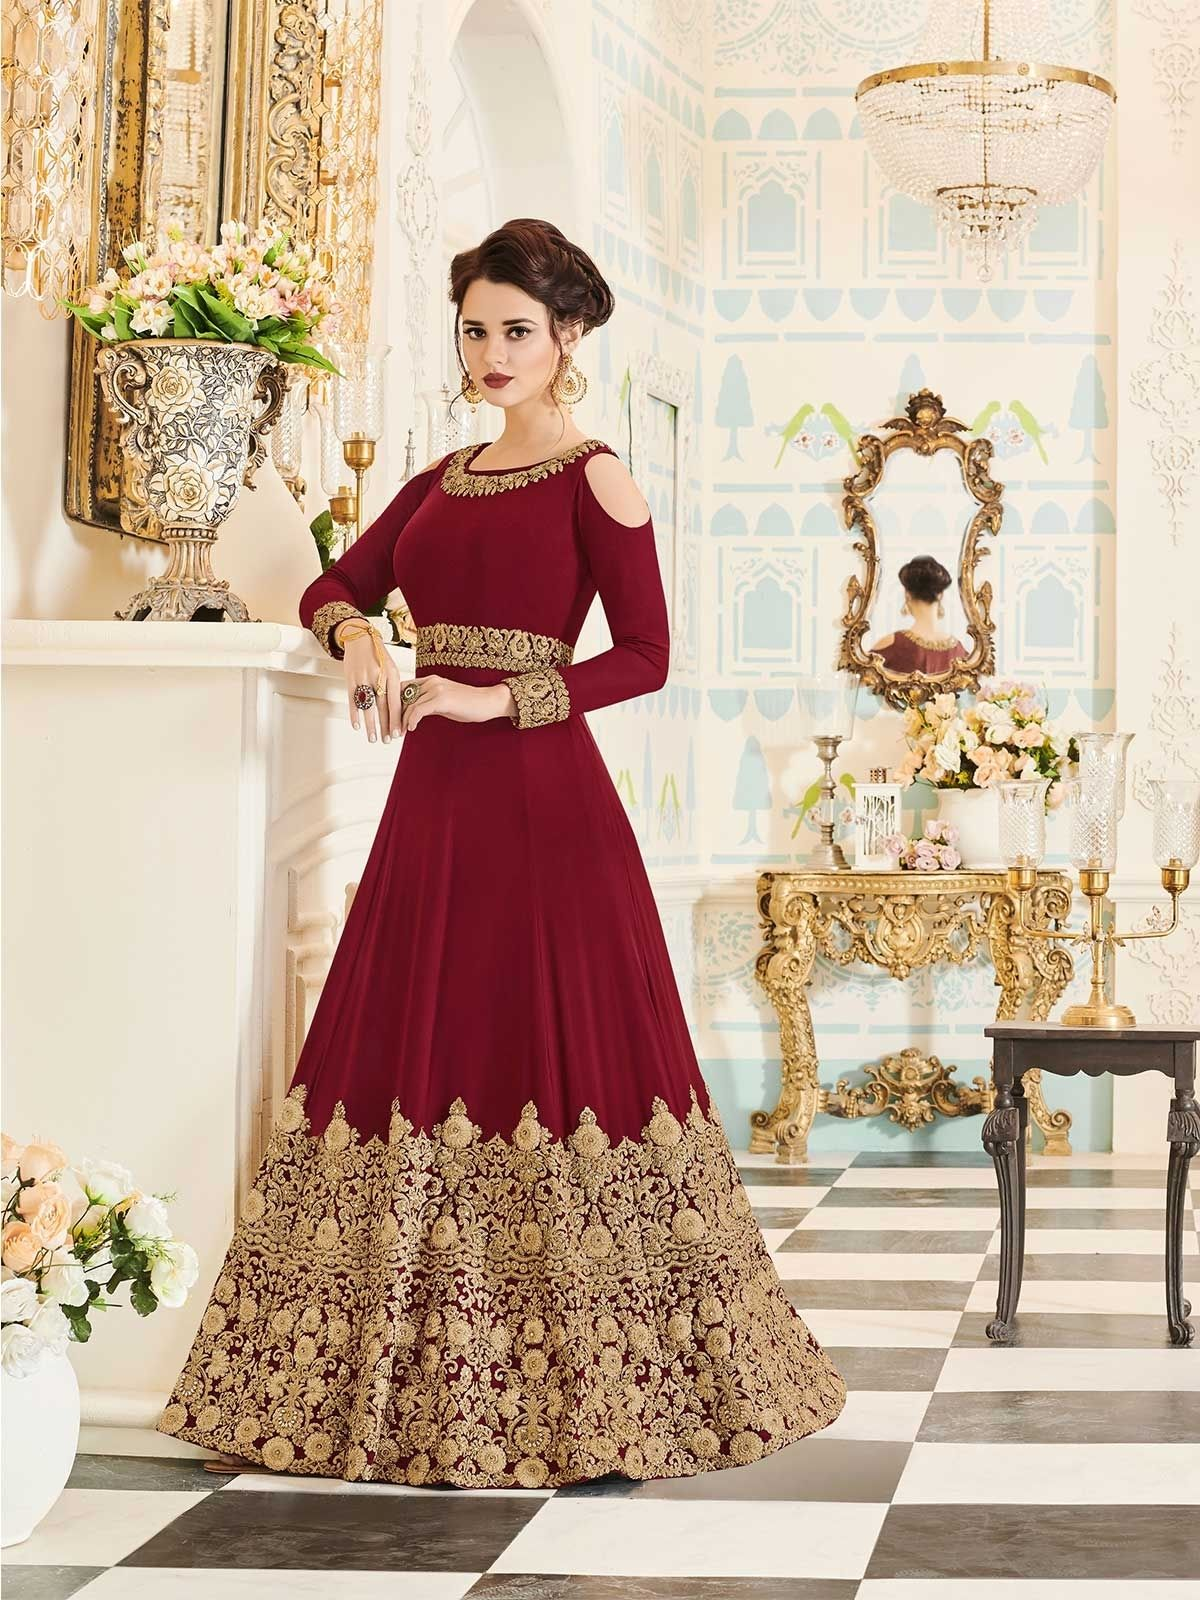 c1f07dba9 Buy latest designer maroon color party wear Indian anarkali suit dresses  collection online at ZaraaFab UK. Find best designs and collection in  umbrella ...